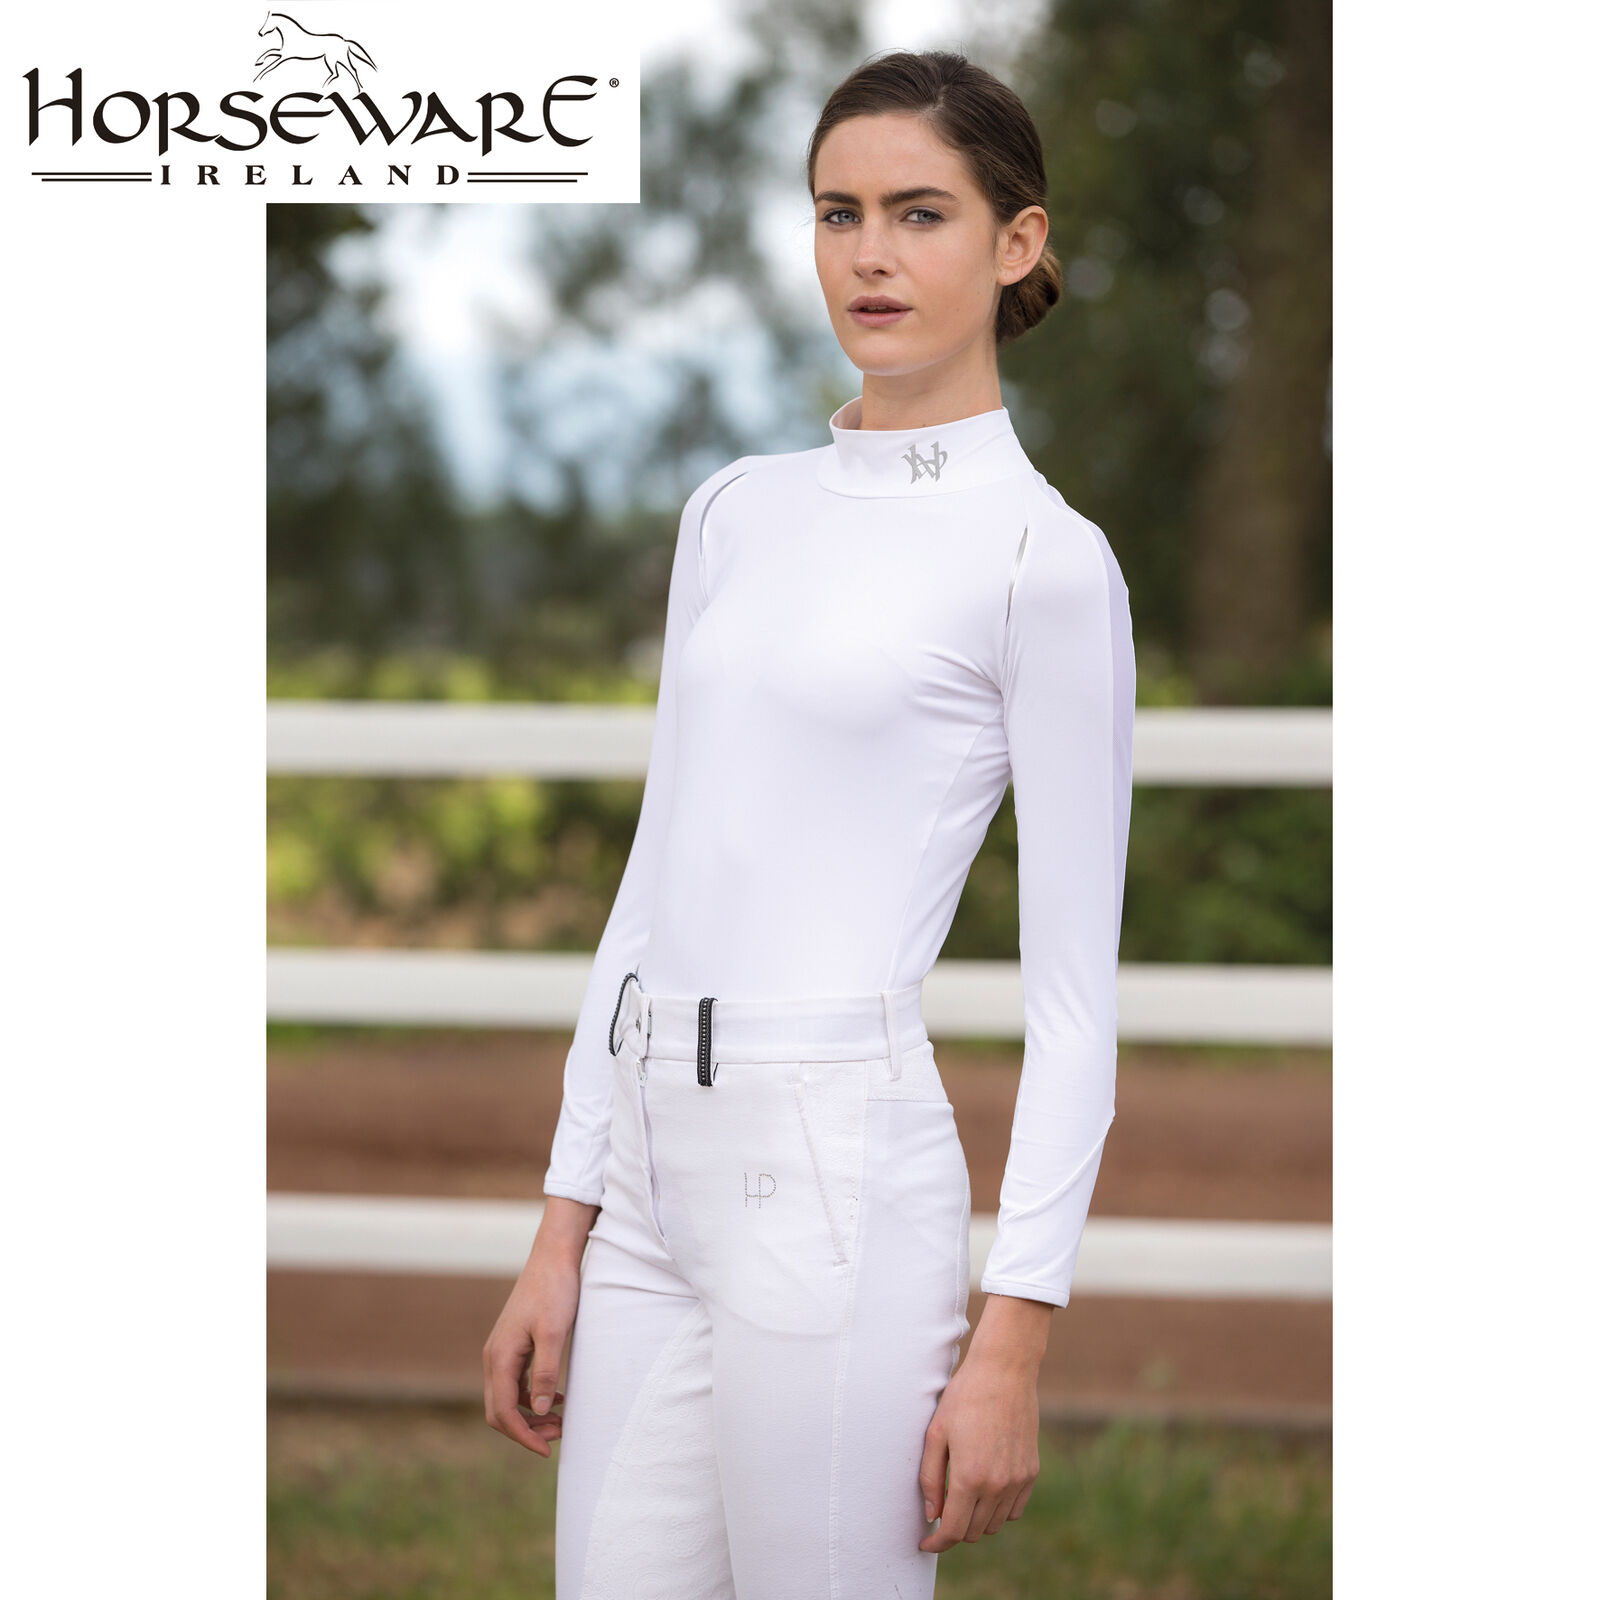 Horseware Ladies Long Sleeve Base Layer (CJBAFS) BNWT